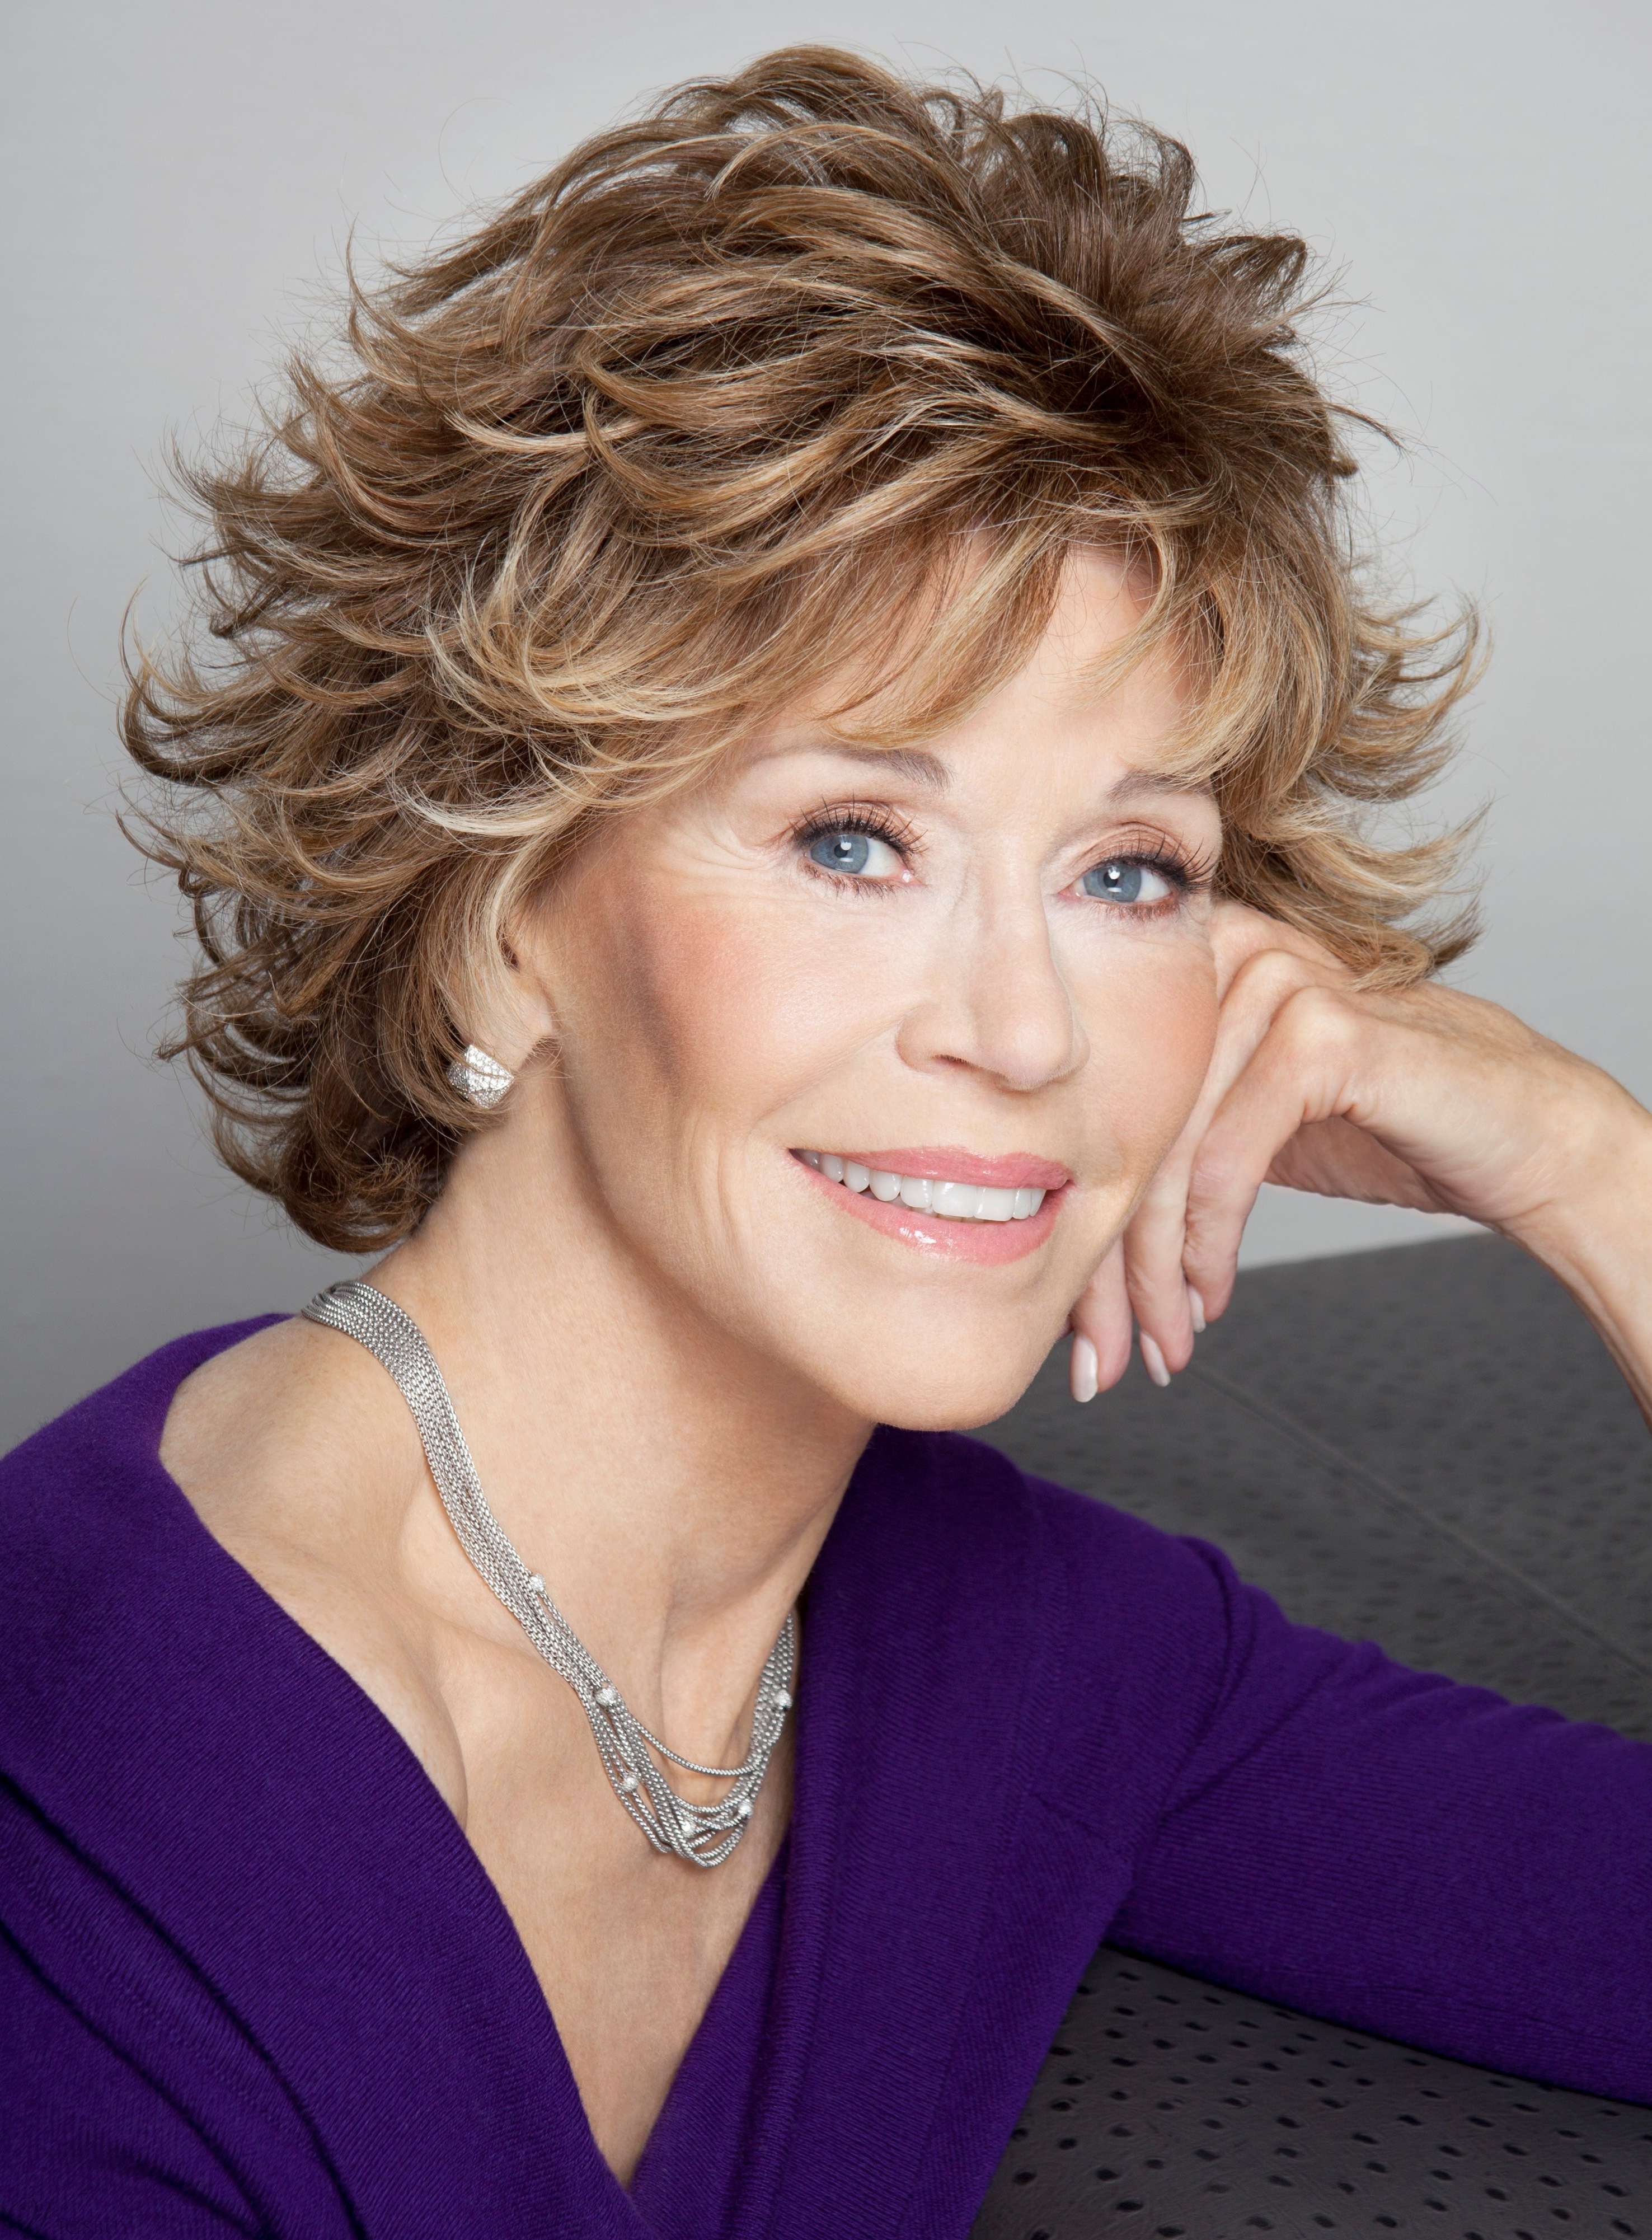 Jane Fonda Short Wavy Layered Synthetic Hair Capless Wig 8 Inches 11664618